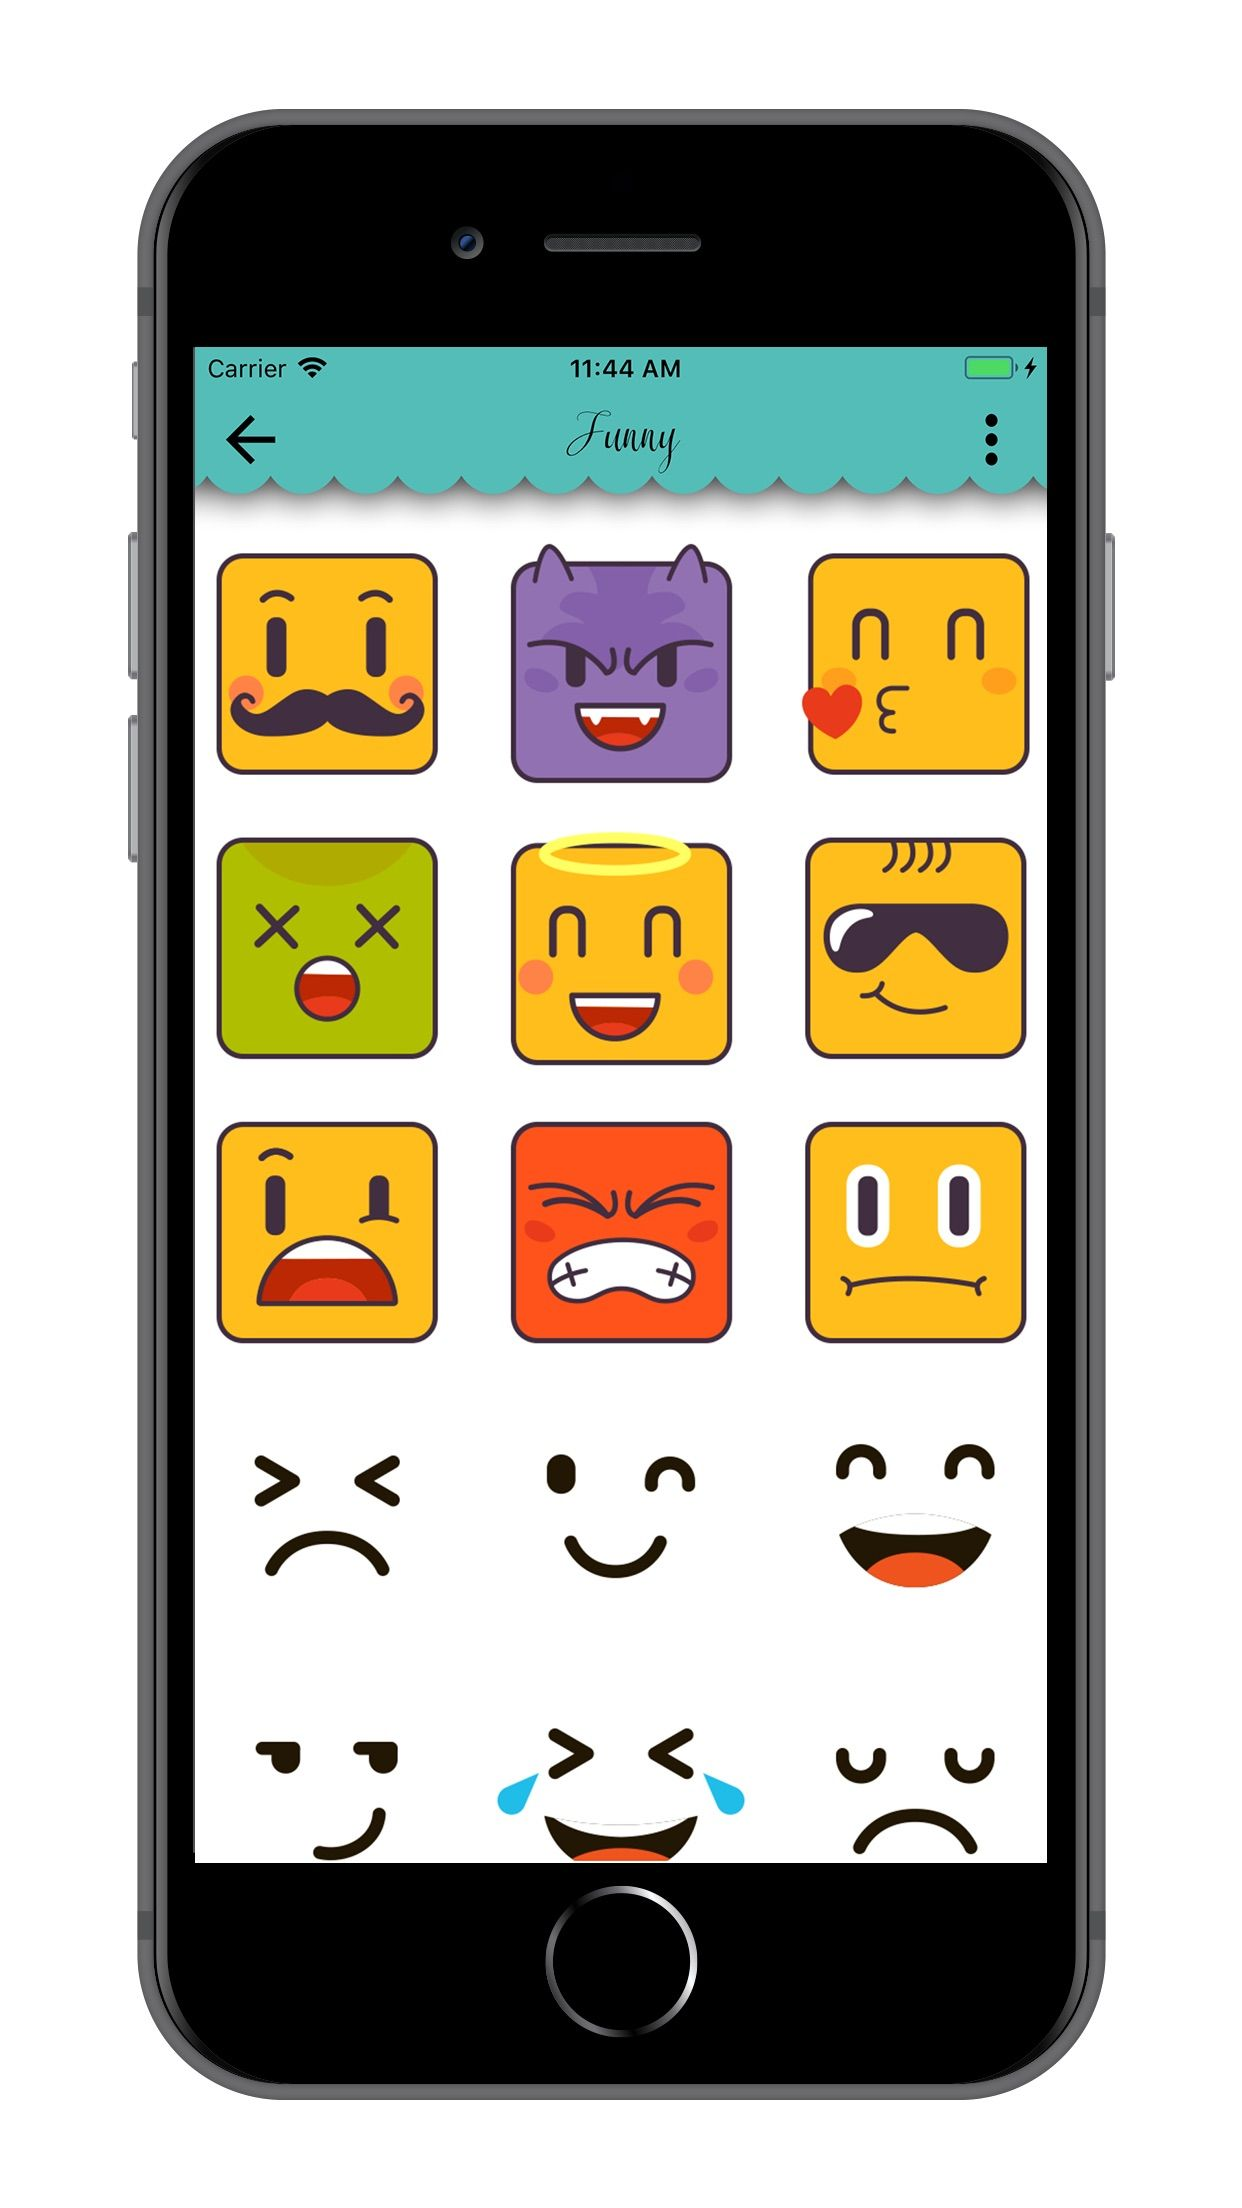 stickers for chat messengers miscellaneous app templates. Black Bedroom Furniture Sets. Home Design Ideas